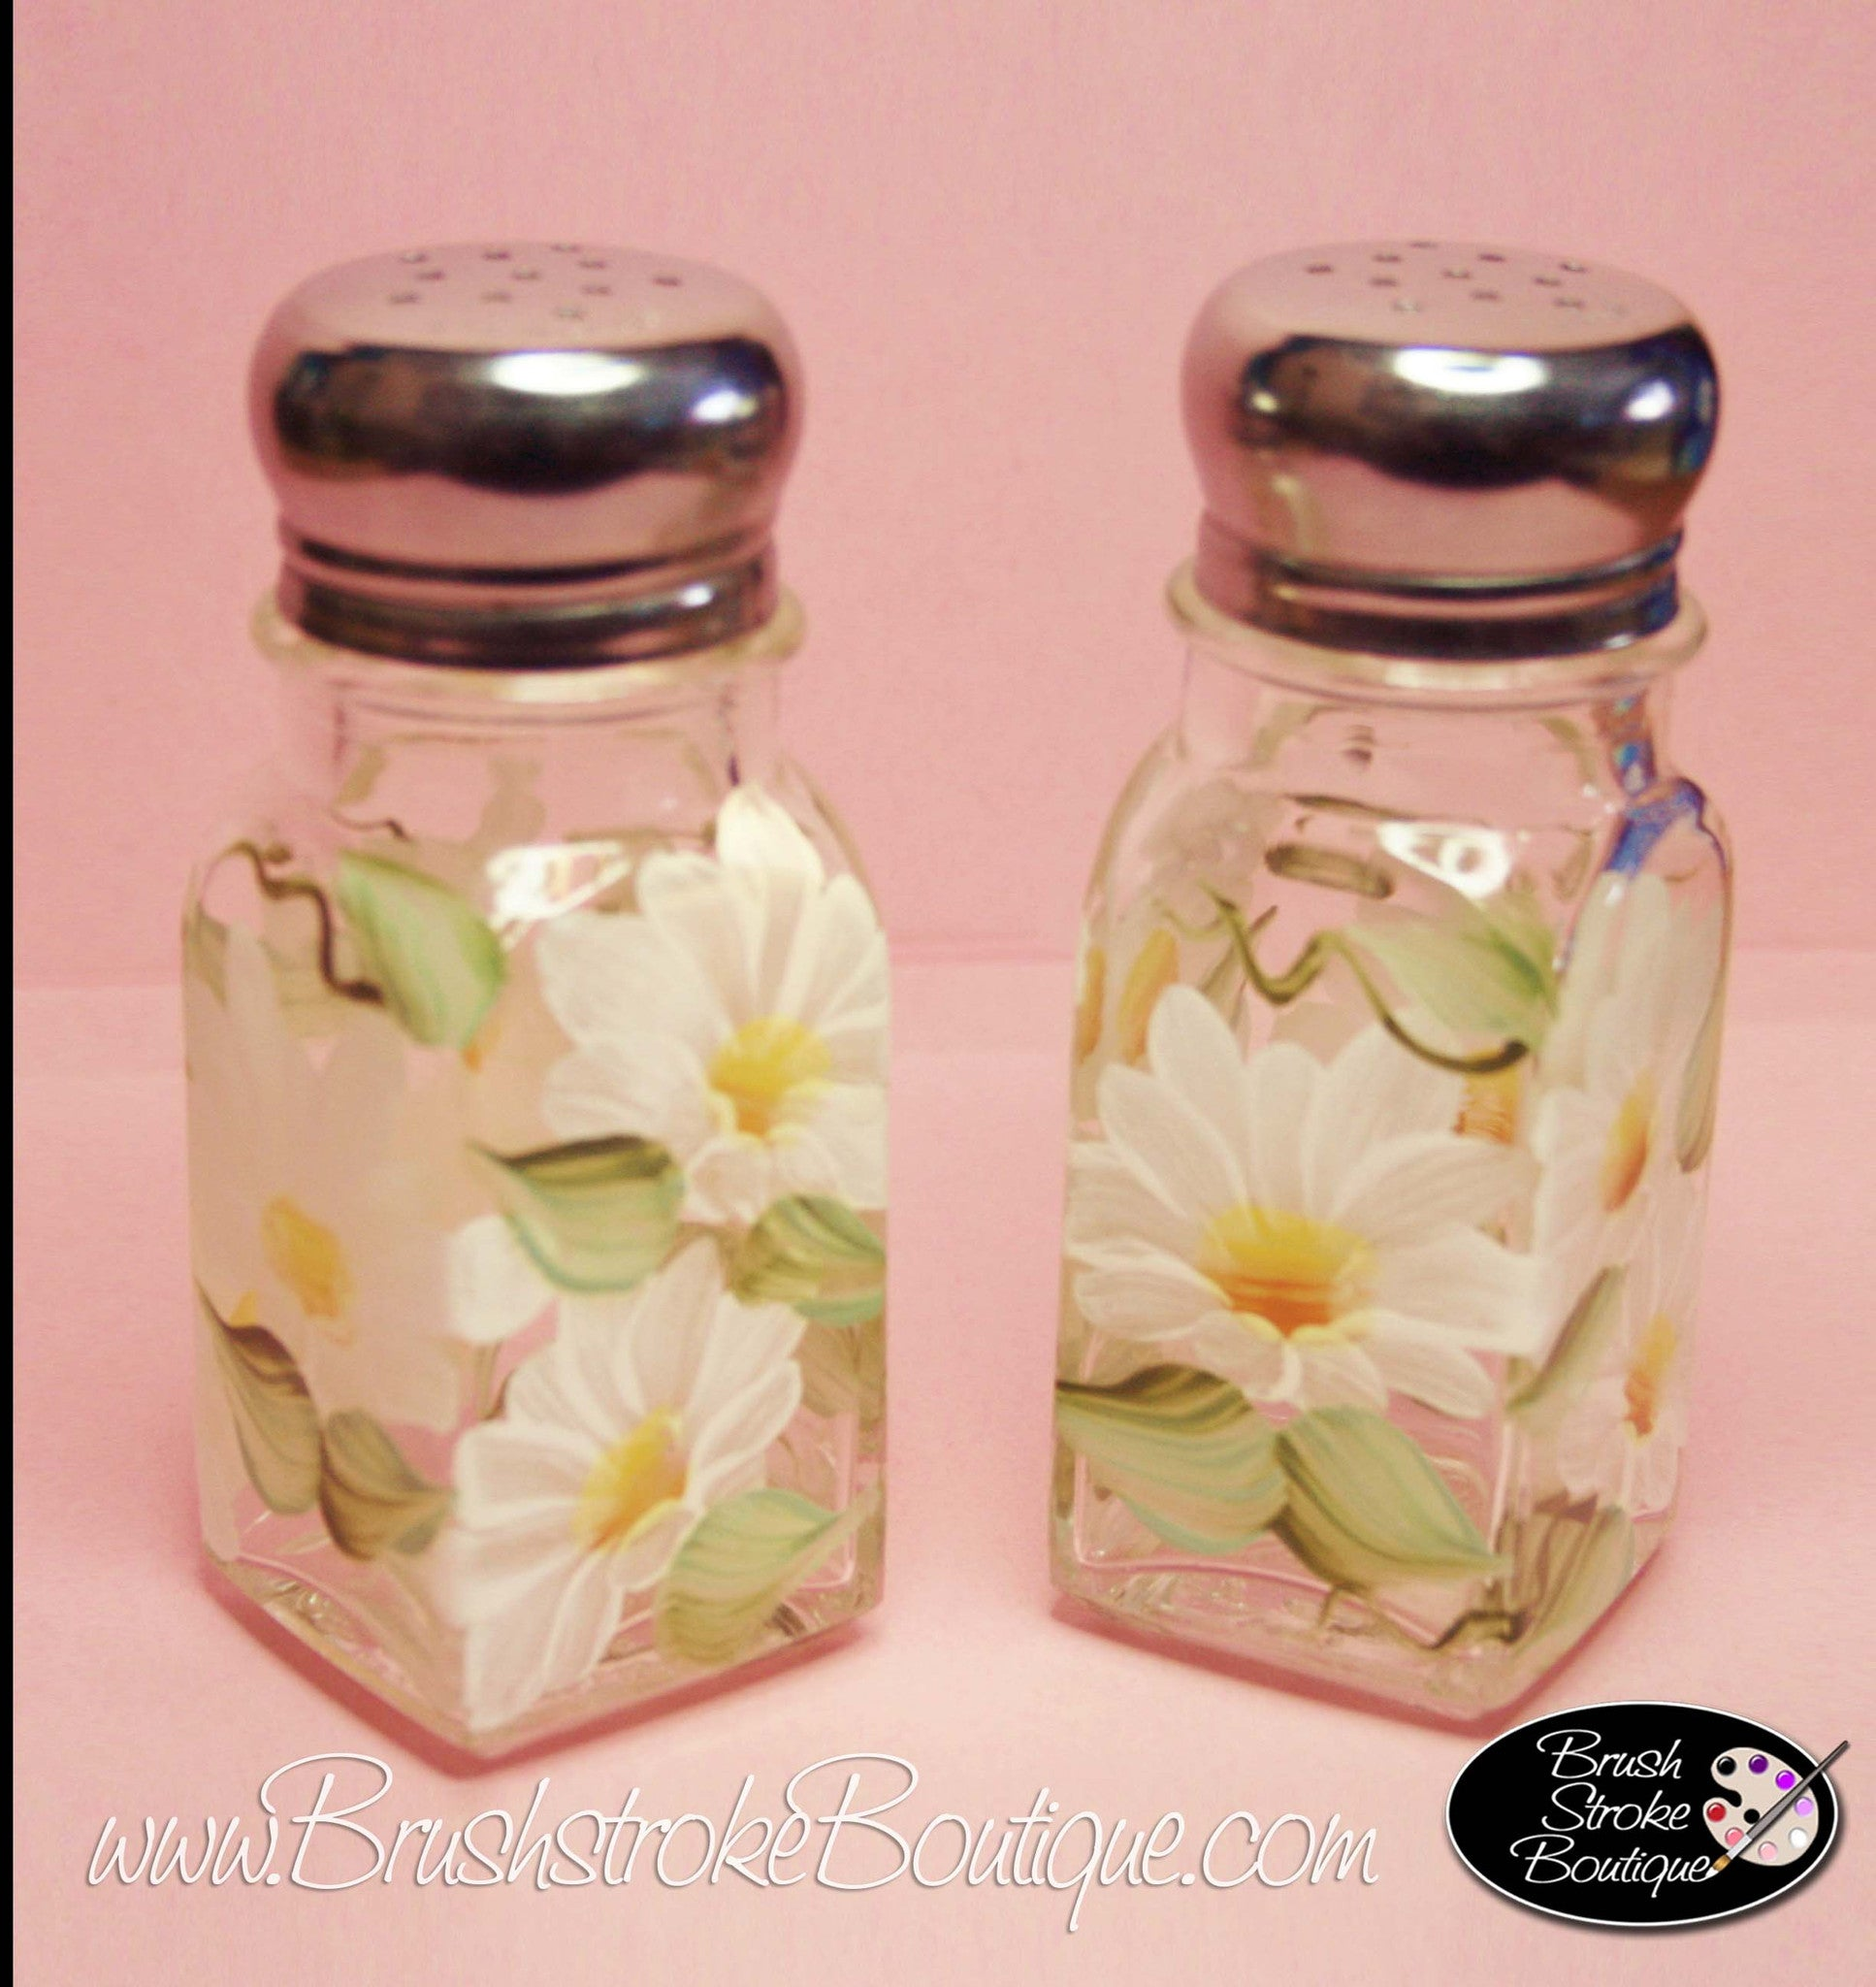 Hand Painted Salt & Pepper Shakers - Daisies - Original Designs by Cat